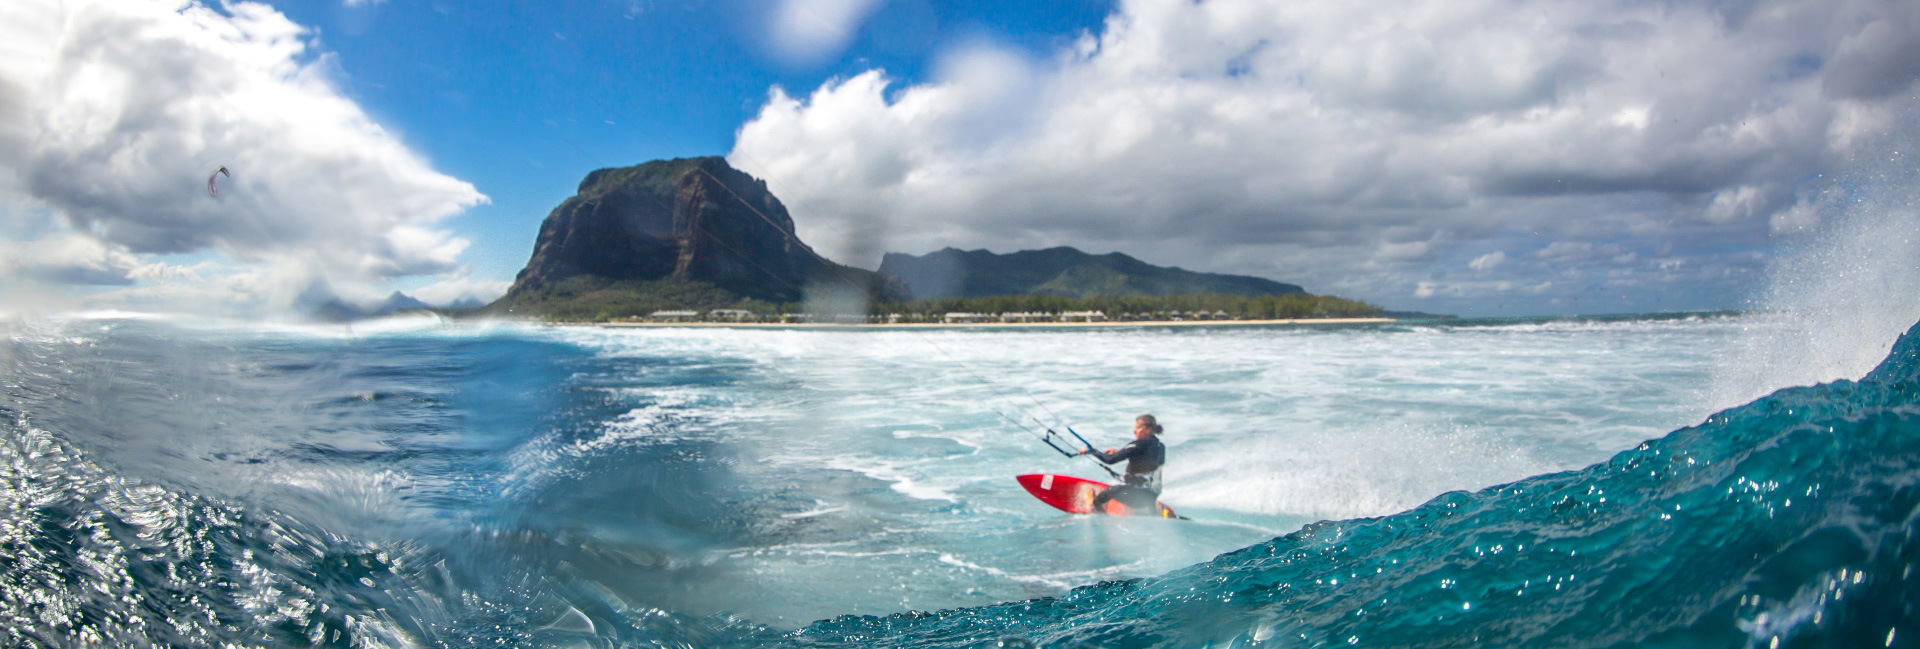 kite-surf-one-eye-mauritius